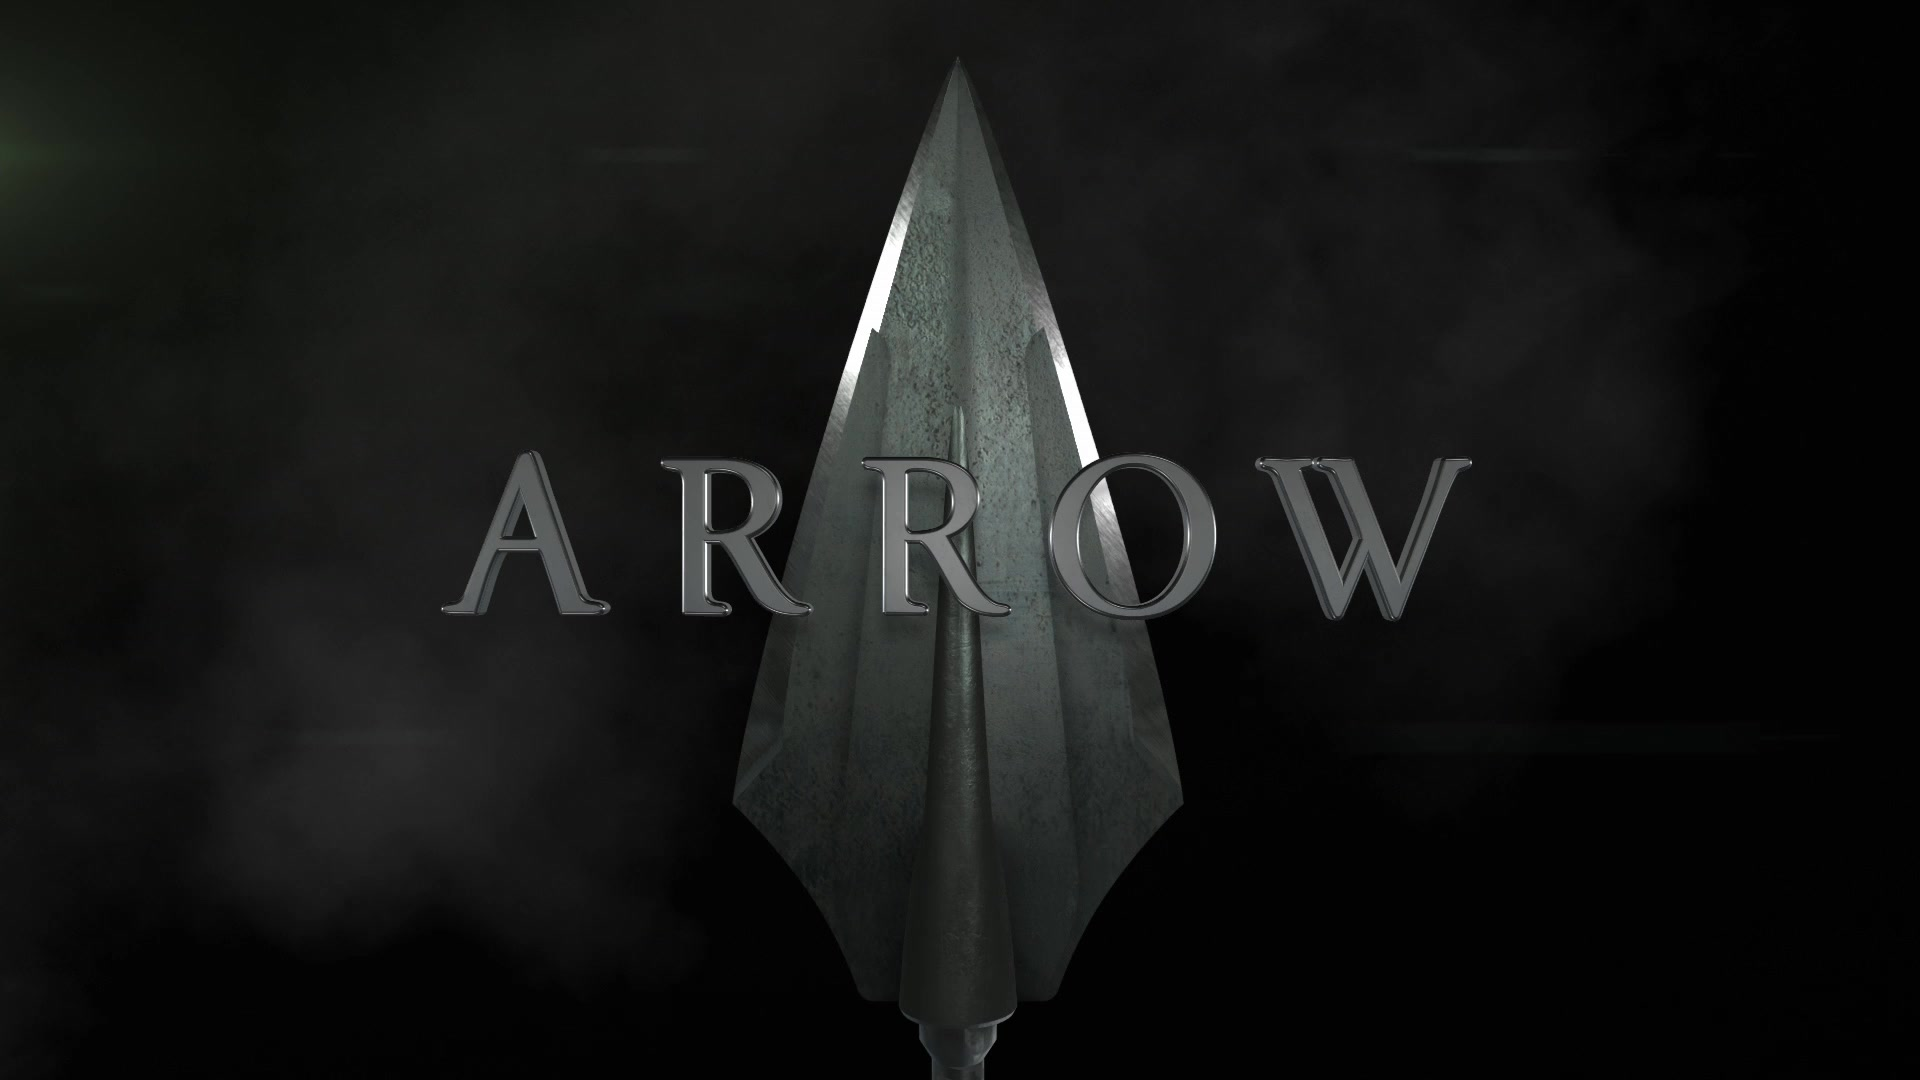 Arrow (TV Series) Episode: Training Day